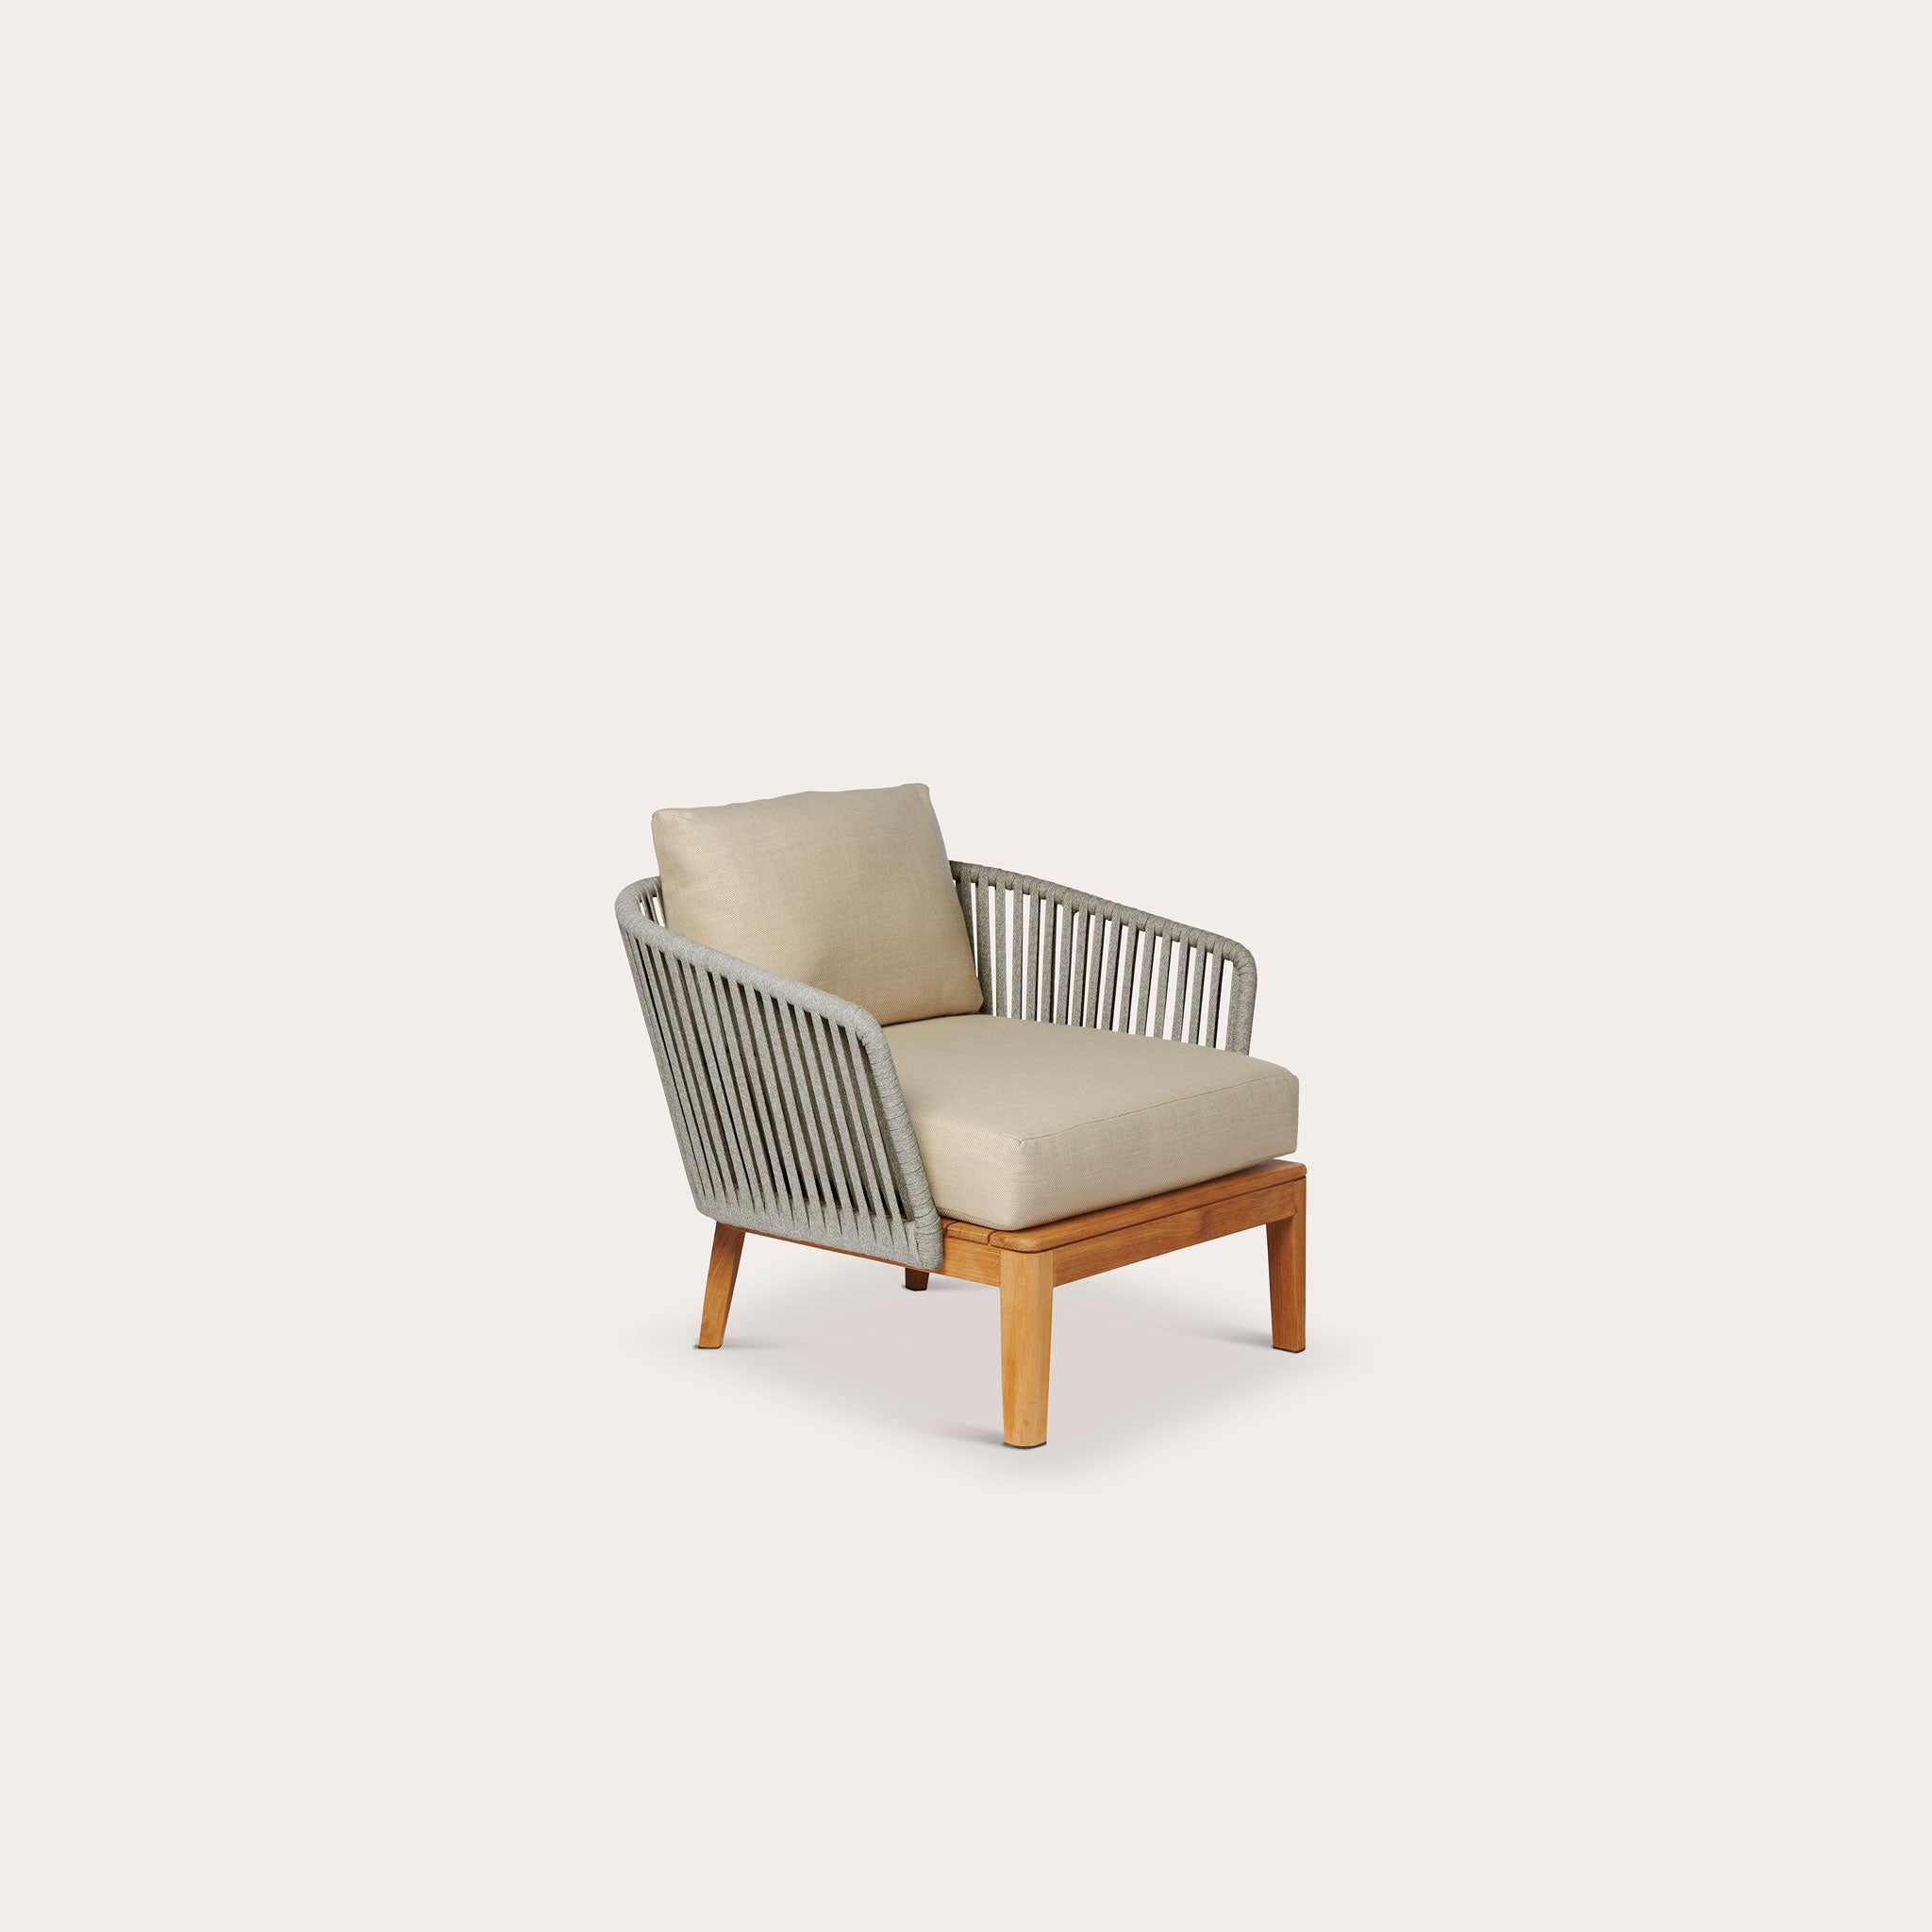 MOOD Club Chair Outdoor Studio Segers Designer Furniture Sku: 007-200-11201